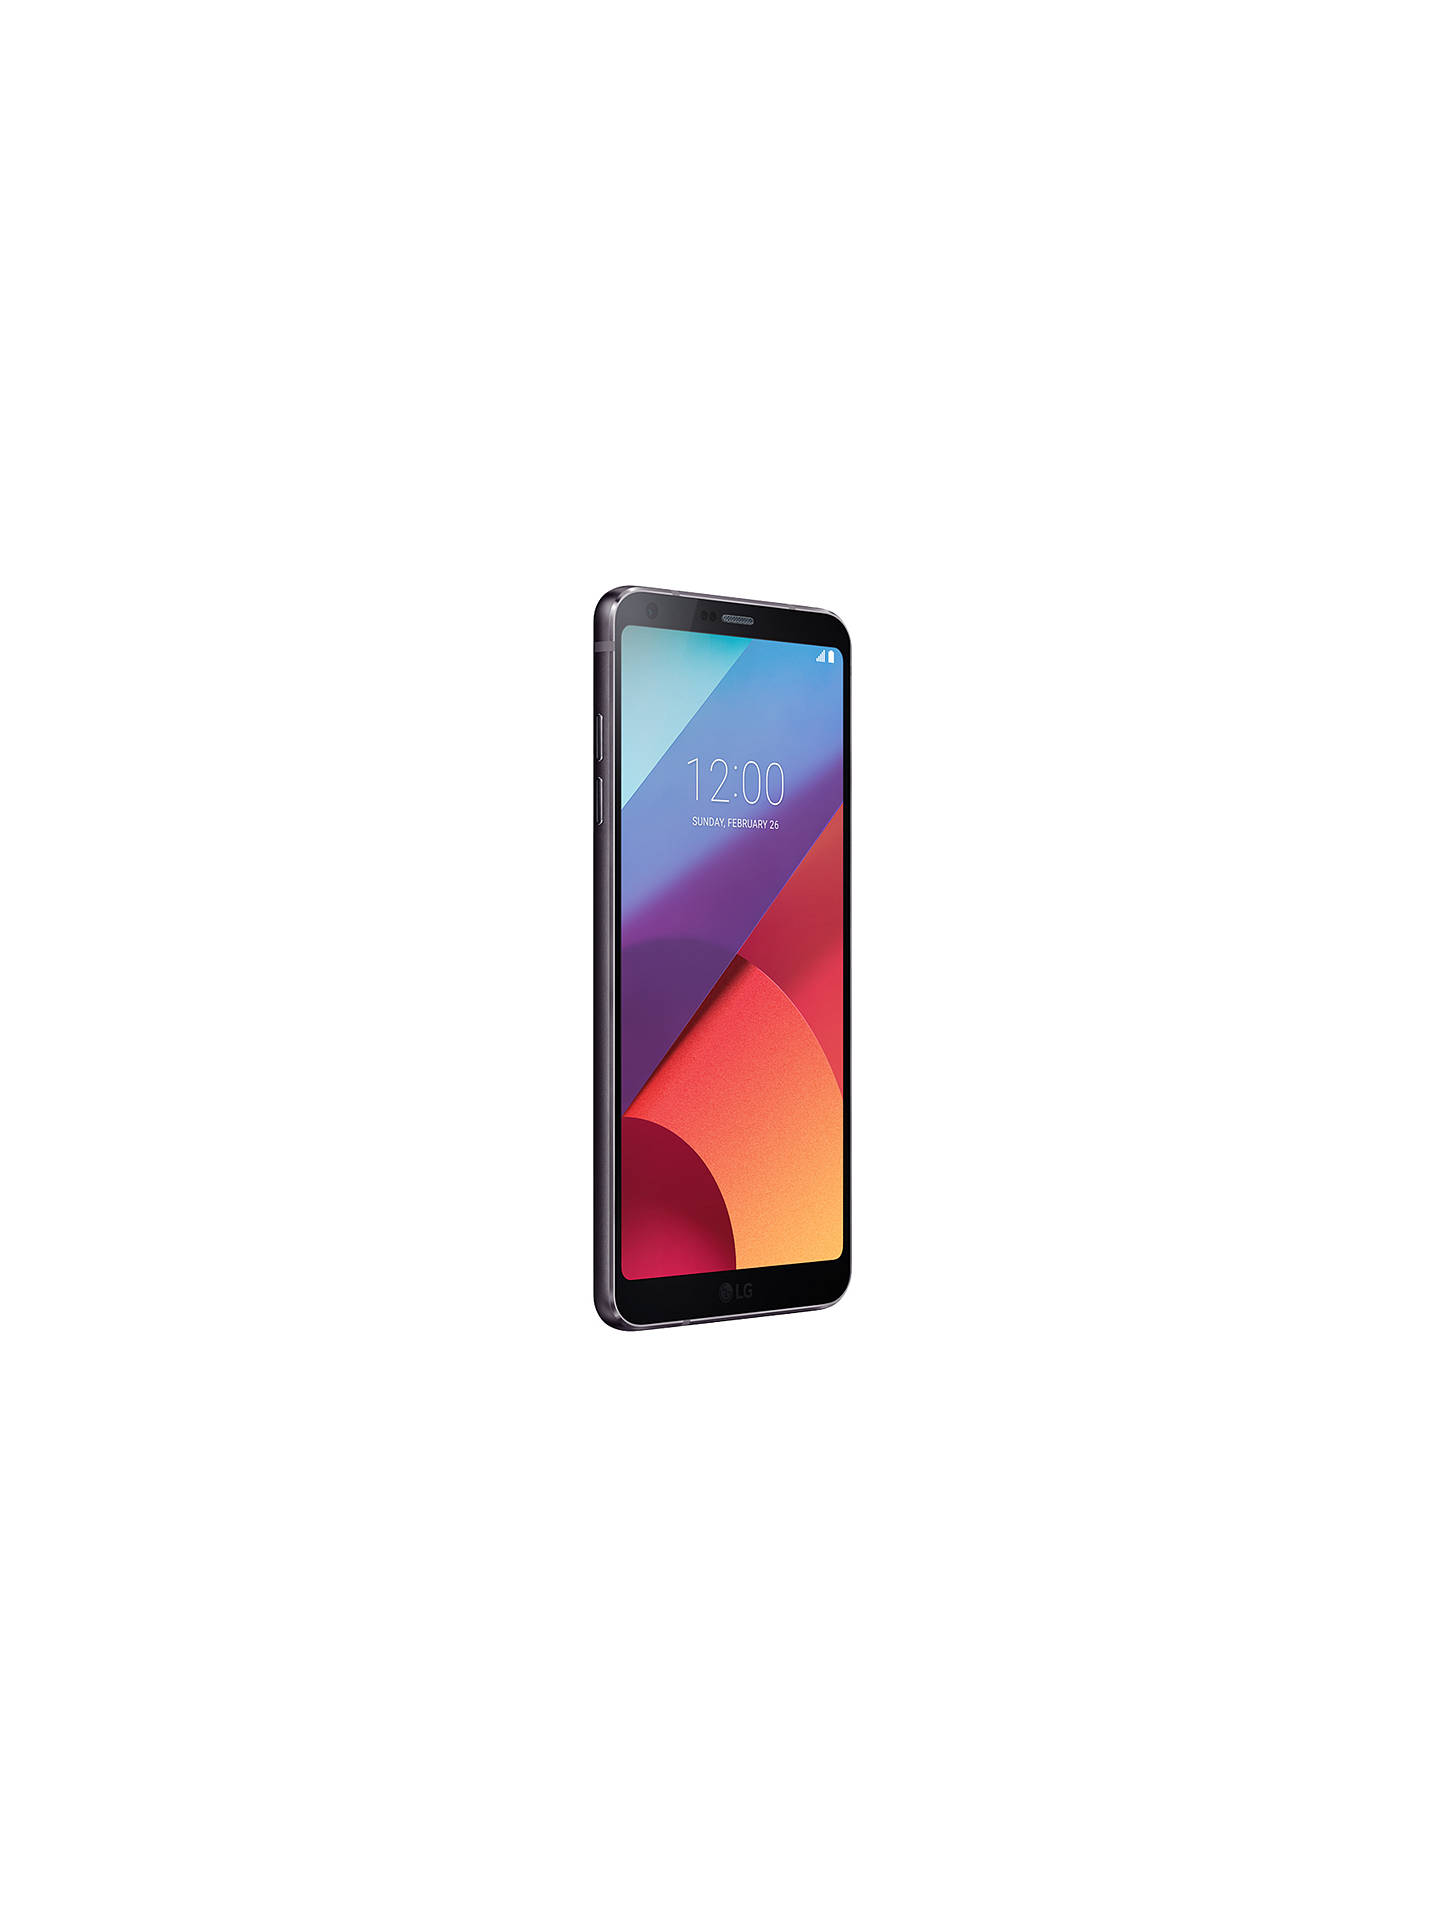 "Buy LG G6 Astro Smartphone, Android, 5.7"", 4G LTE, SIM Free, 32GB, Black Online at johnlewis.com"